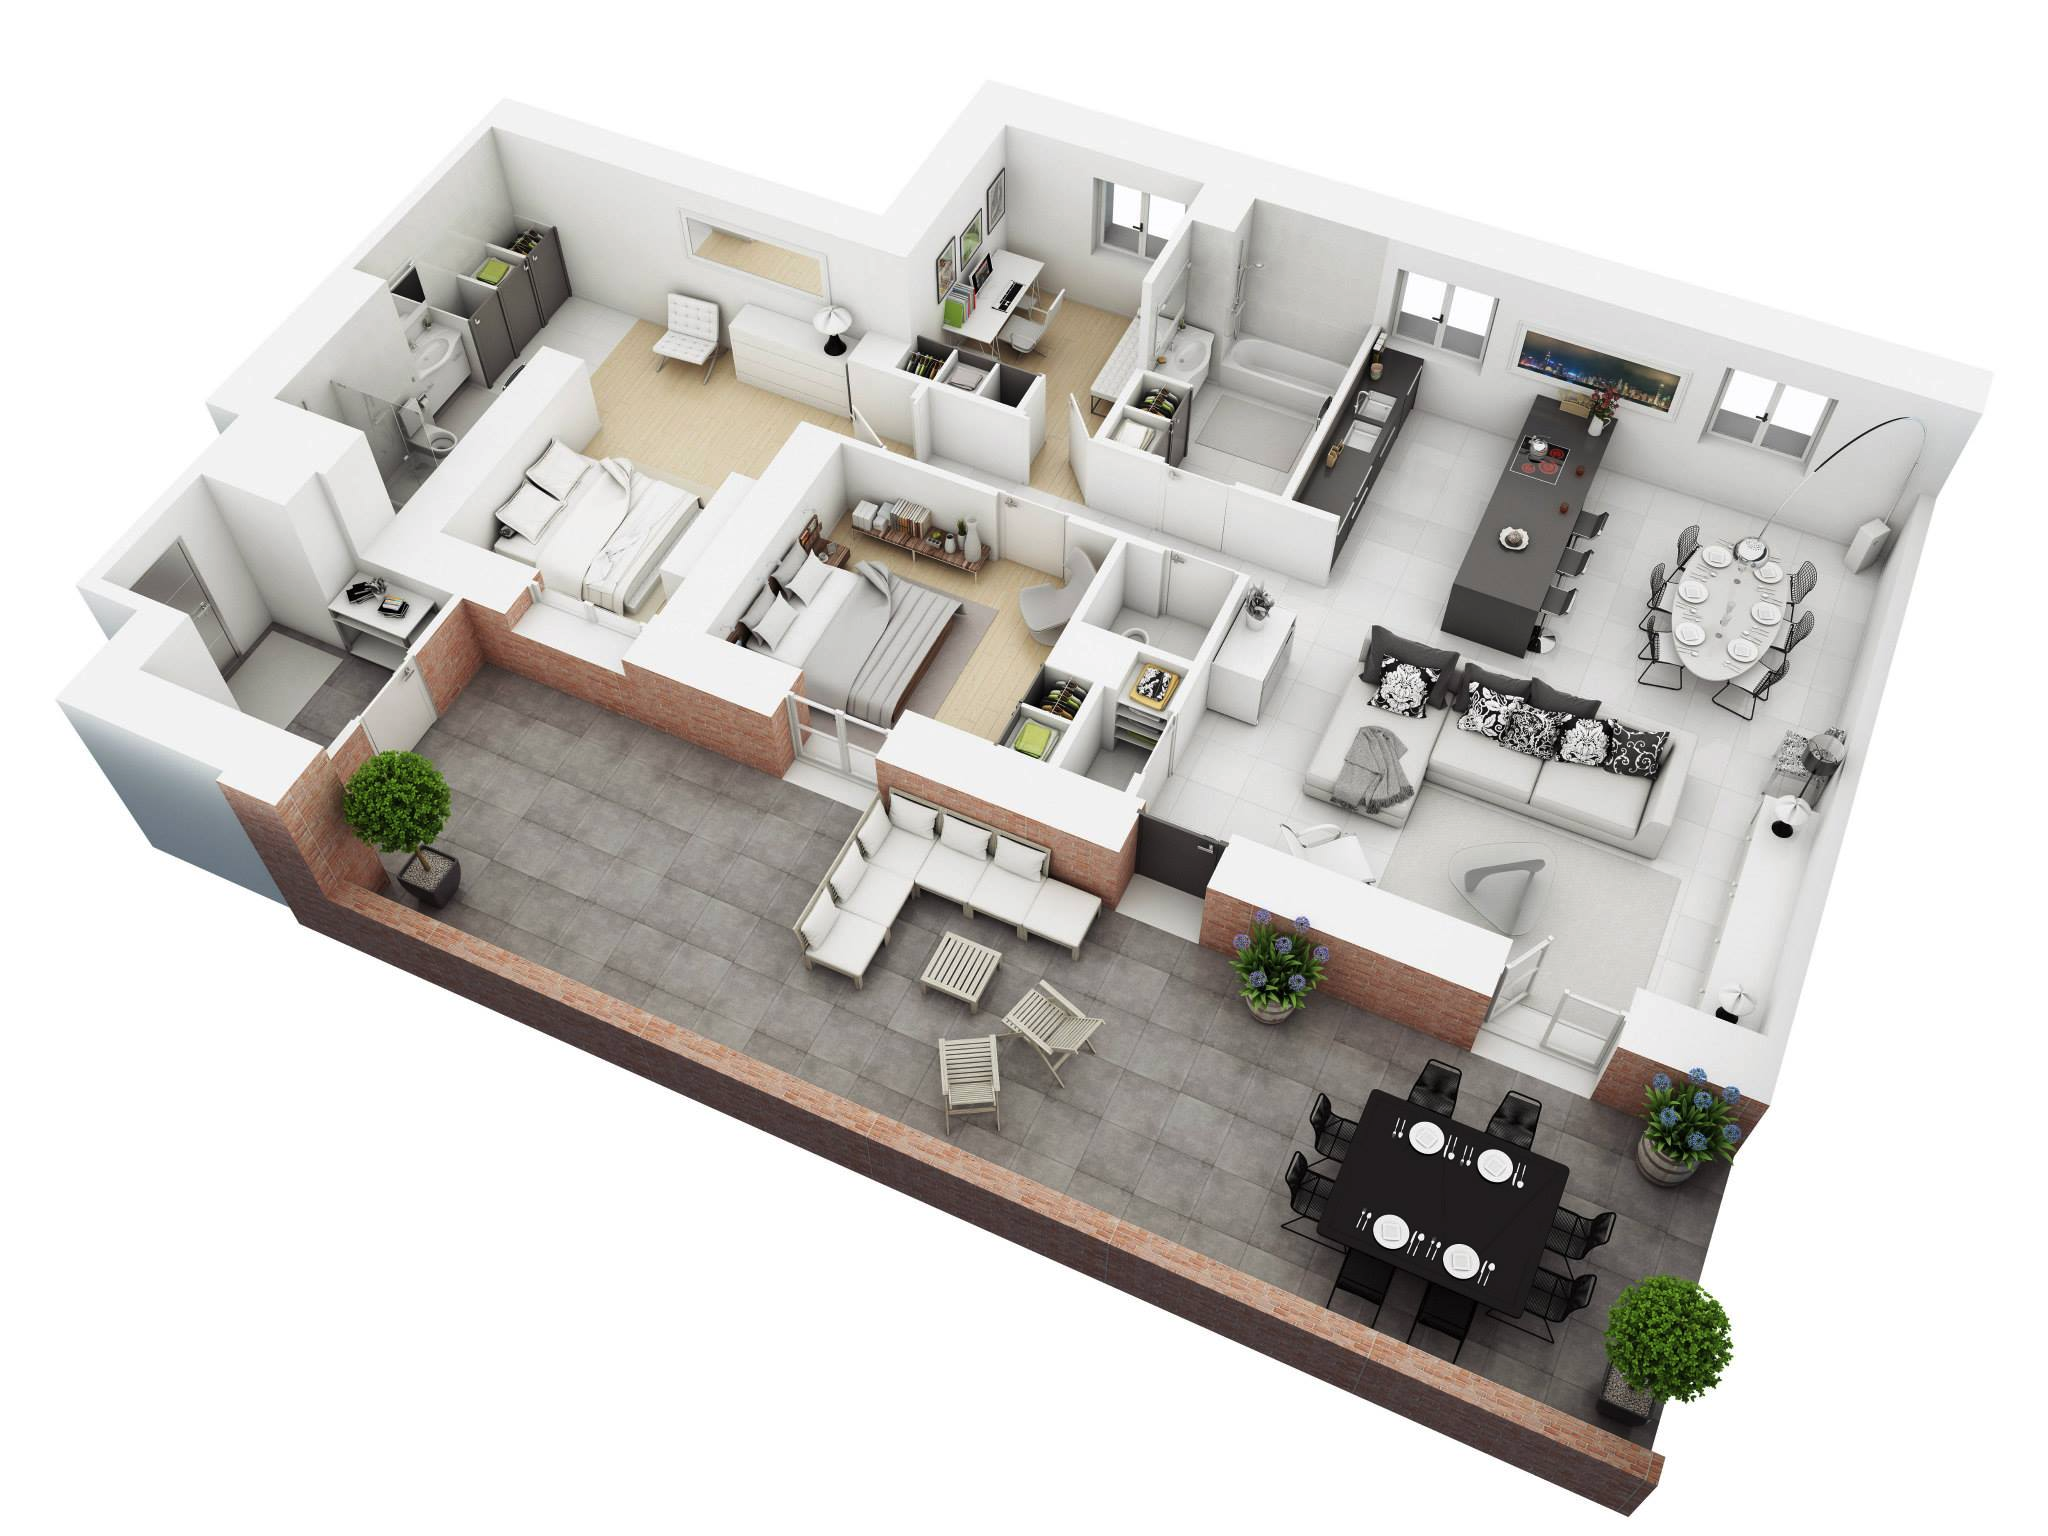 25 more 3 bedroom 3d floor plans - 3d Floor Planning